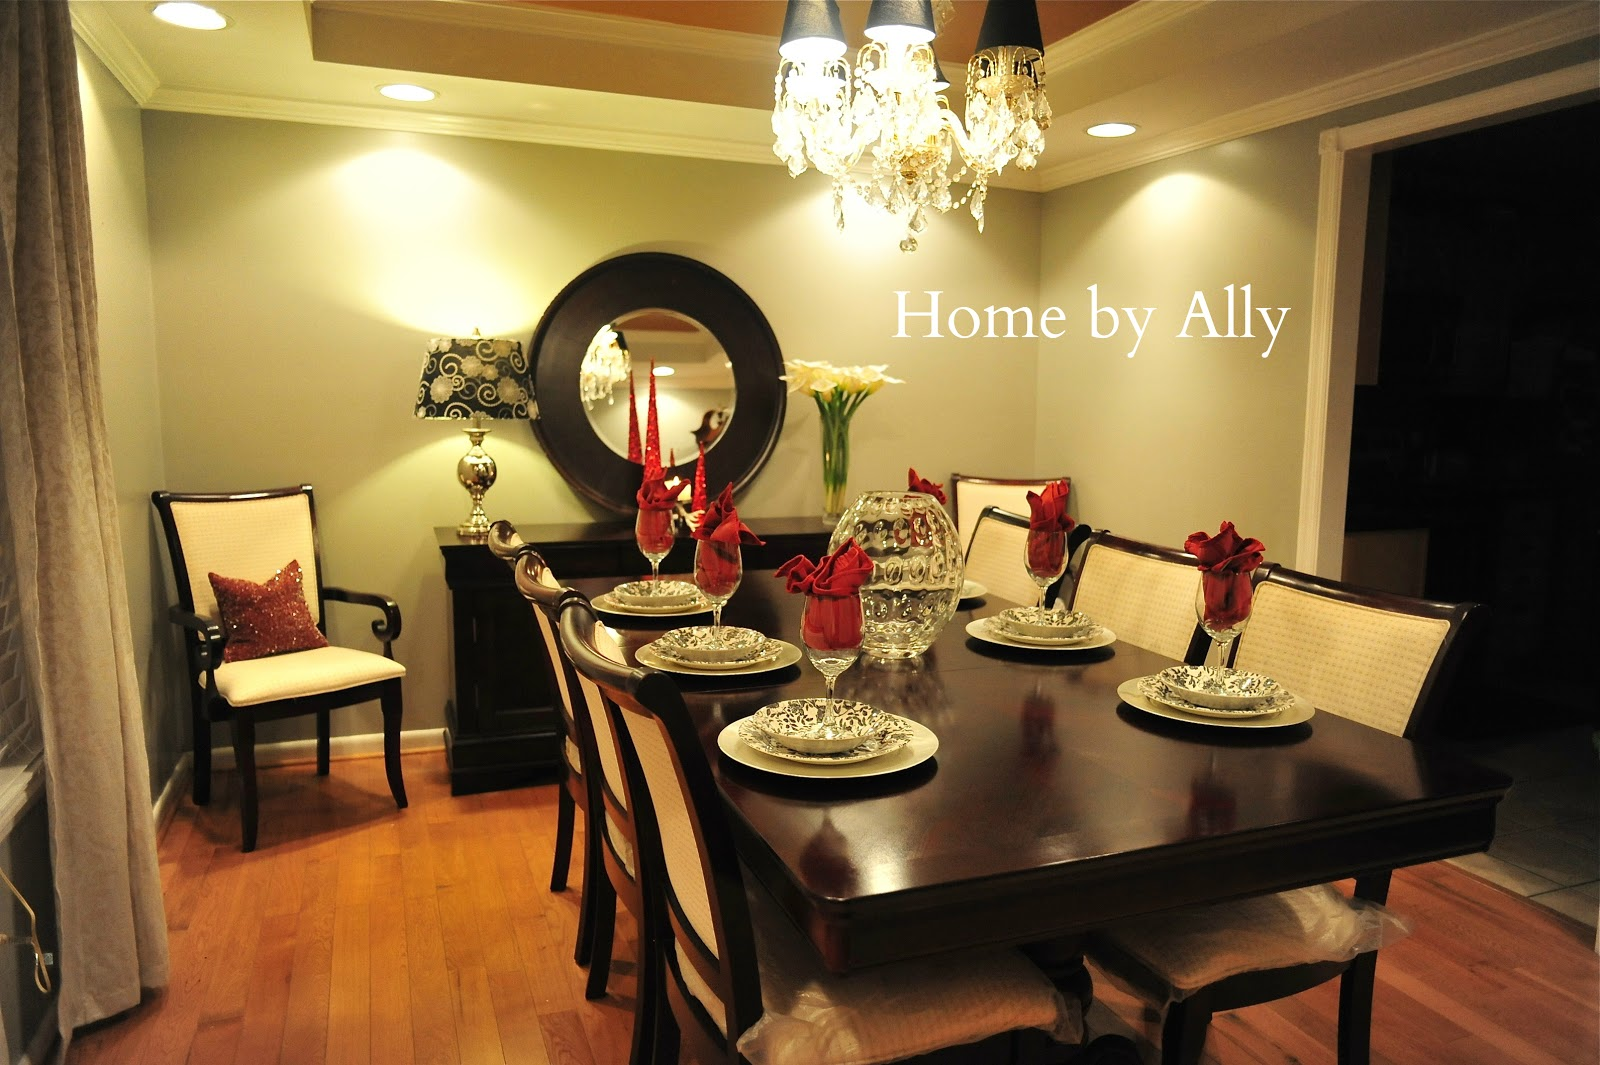 2012 | Home by Ally